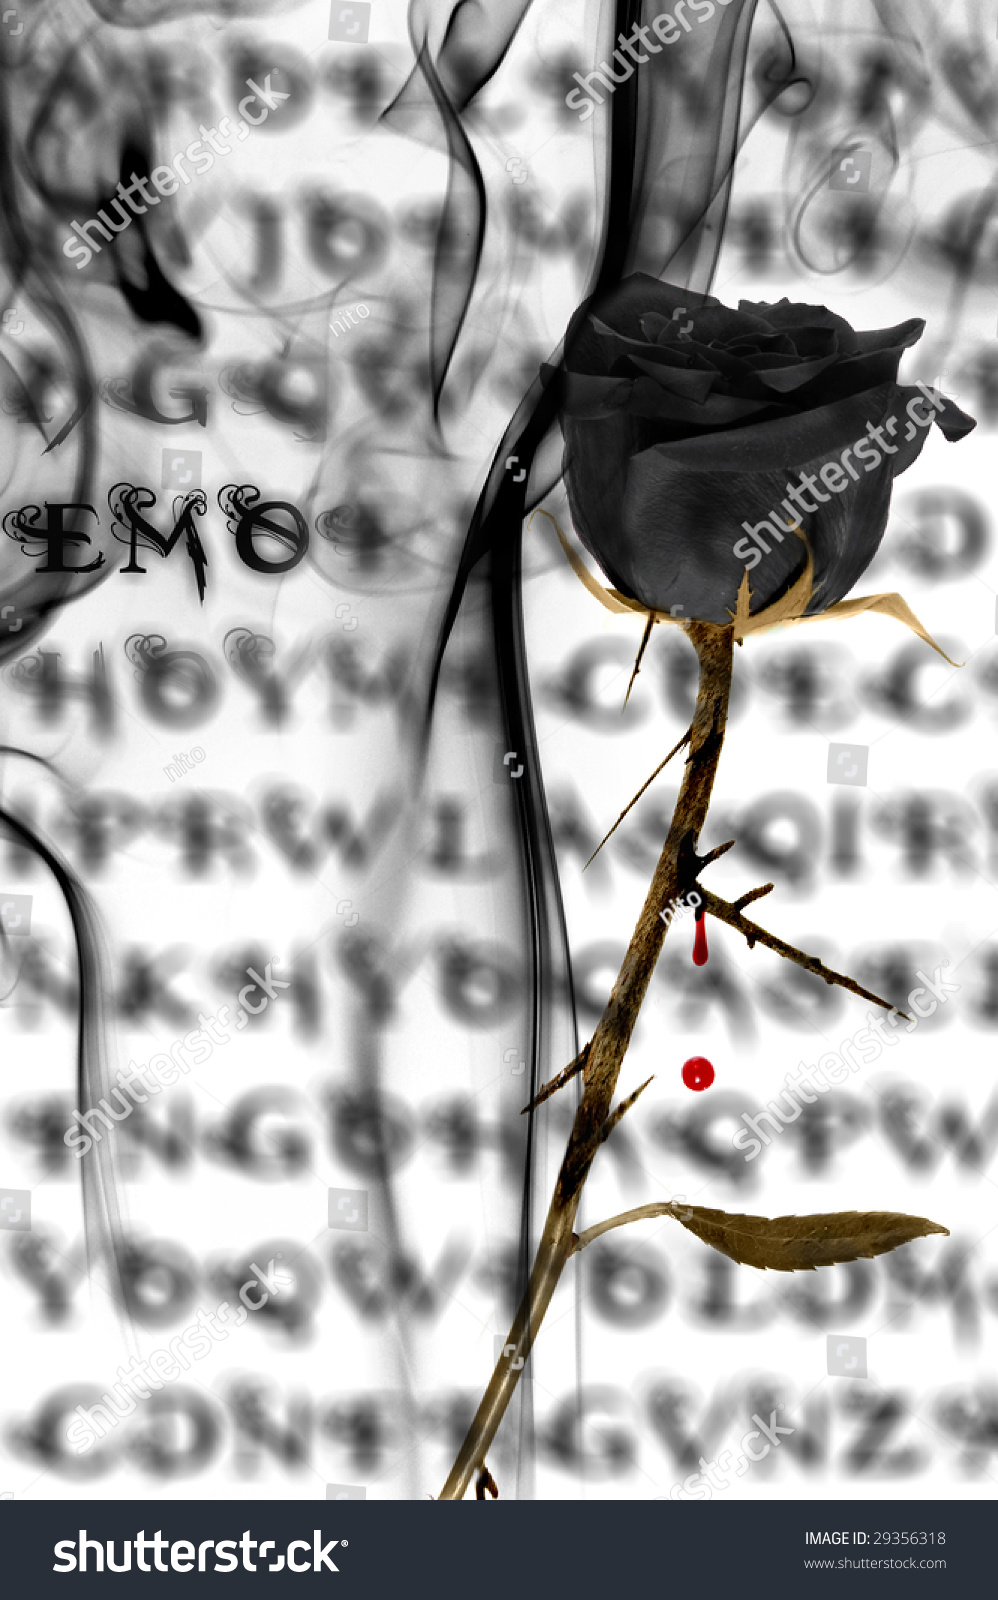 Emo rose stock photo 29356318 shutterstock - Emo rose pictures ...